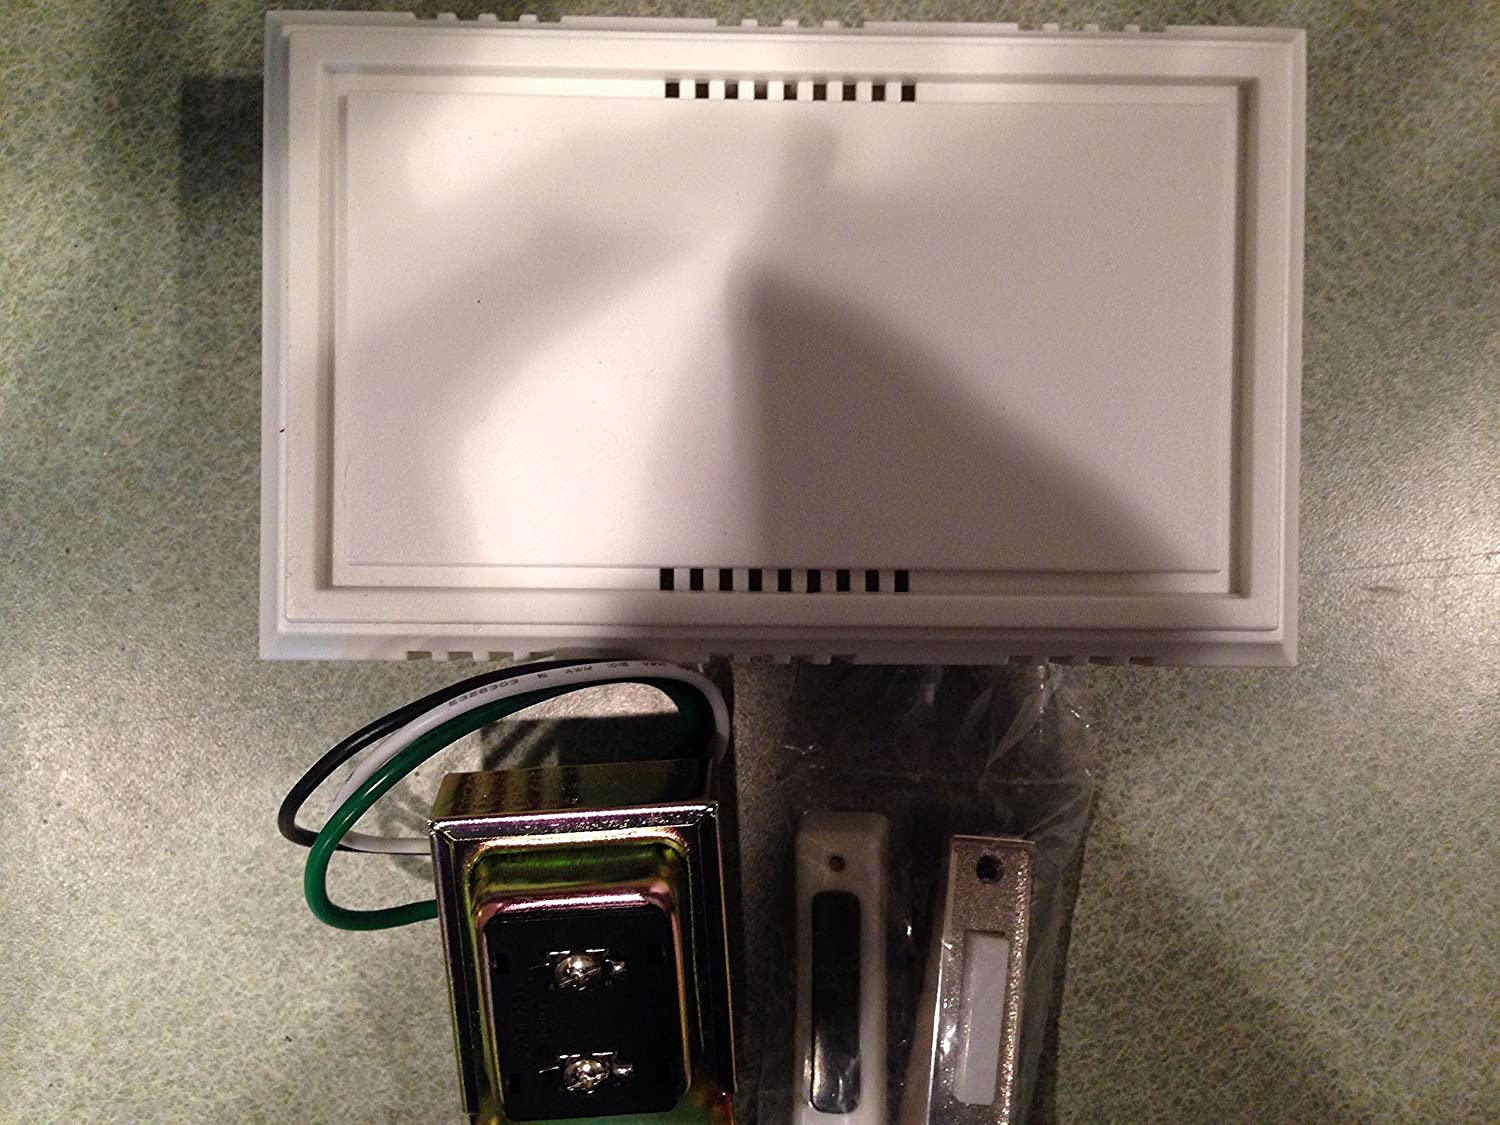 Nickel Brush Button Wired Contractor Doorbell Kit